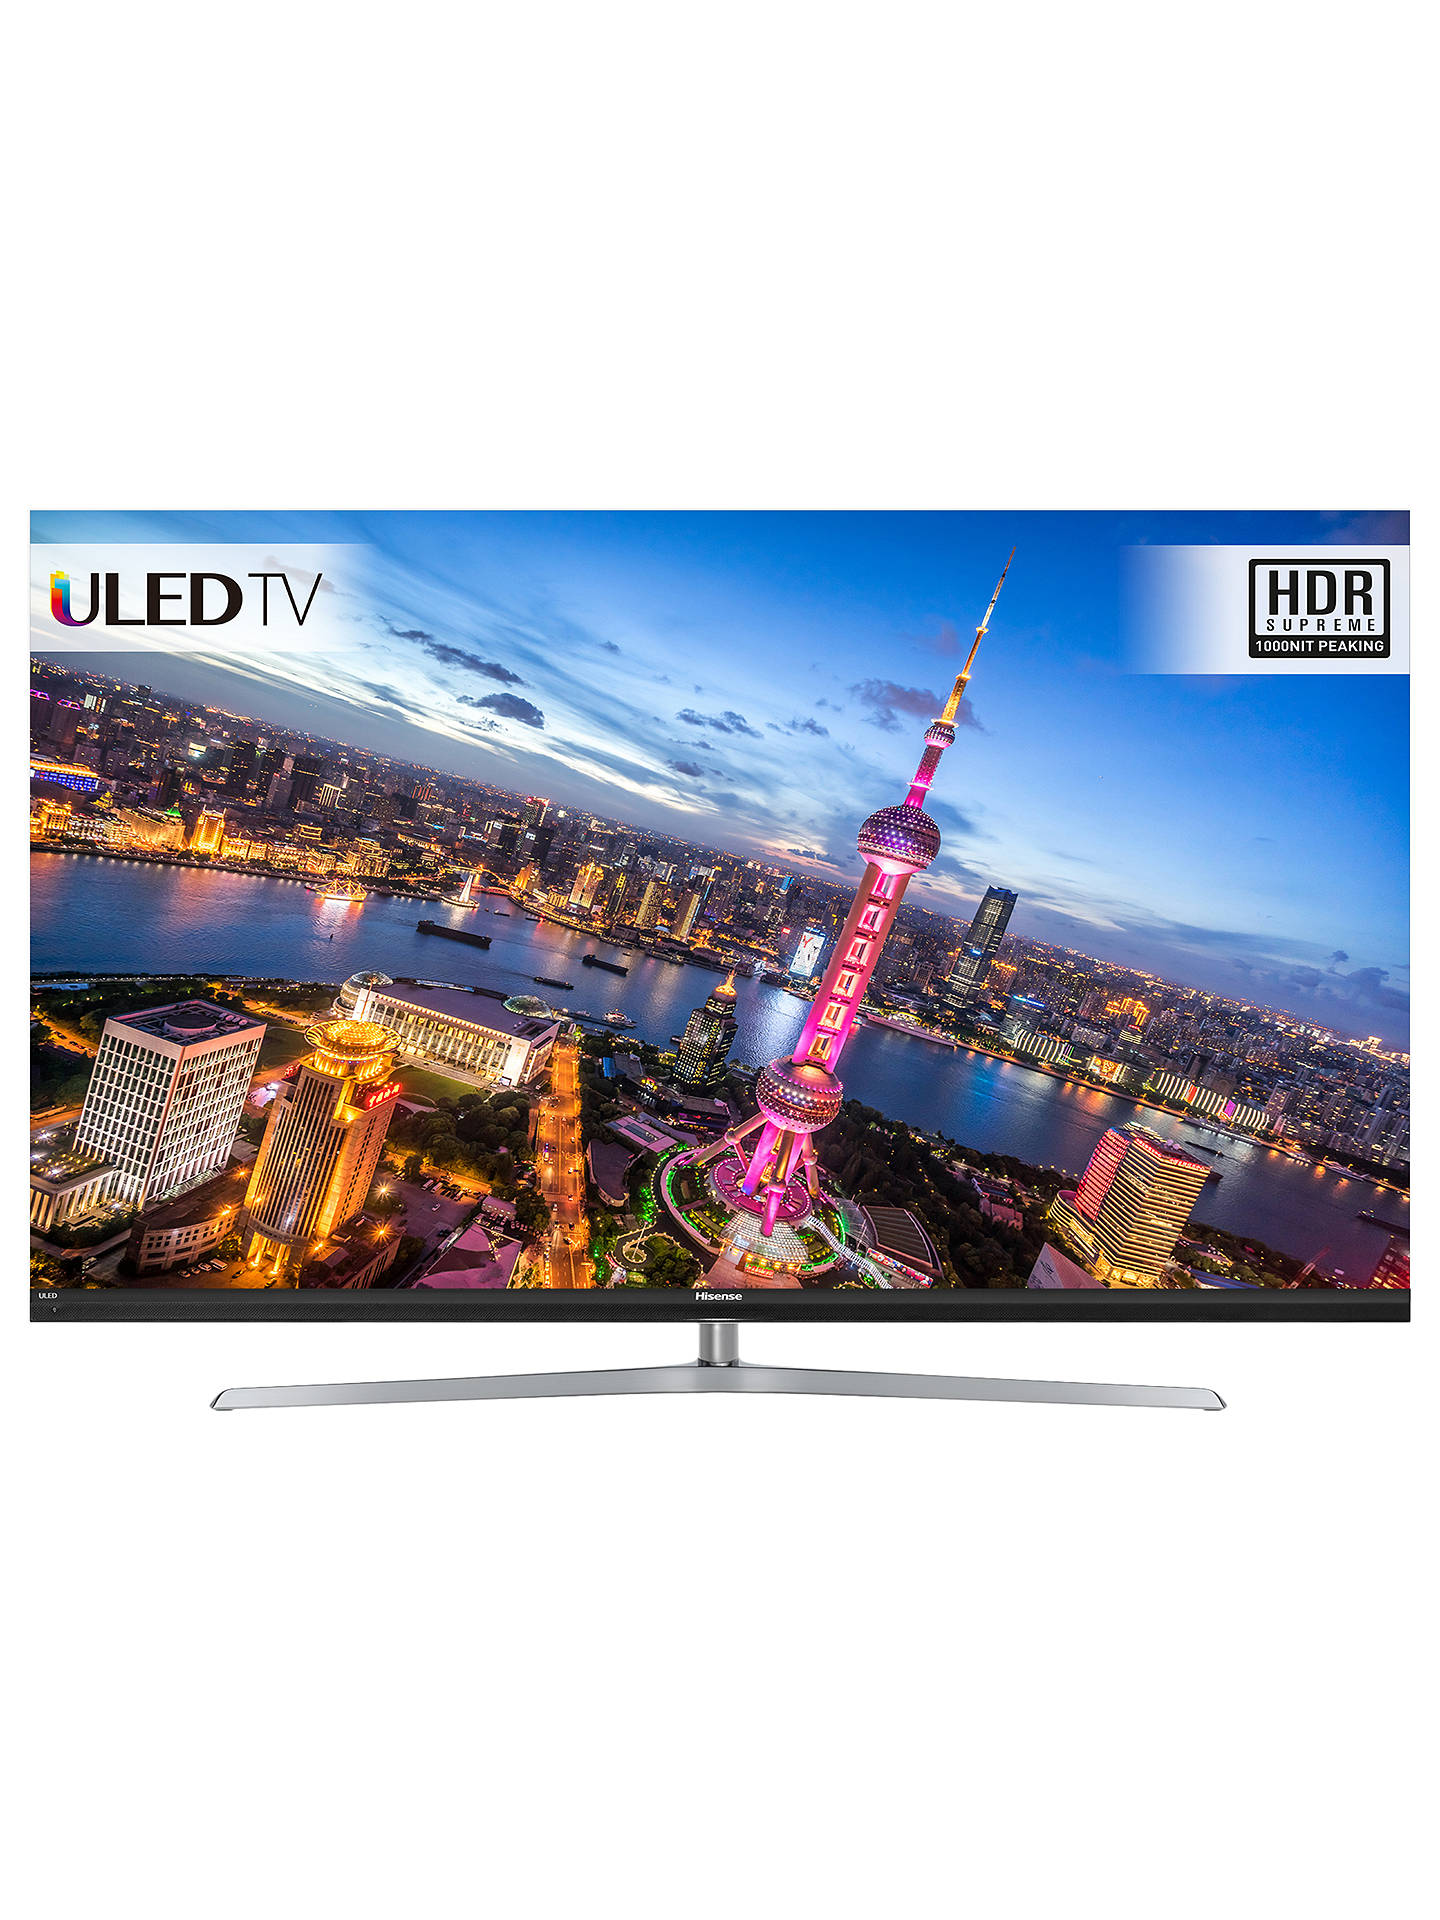 Hisense H65nu8700 Uled Hdr 4k Ultra Hd Smart Tv 65 With Freeview